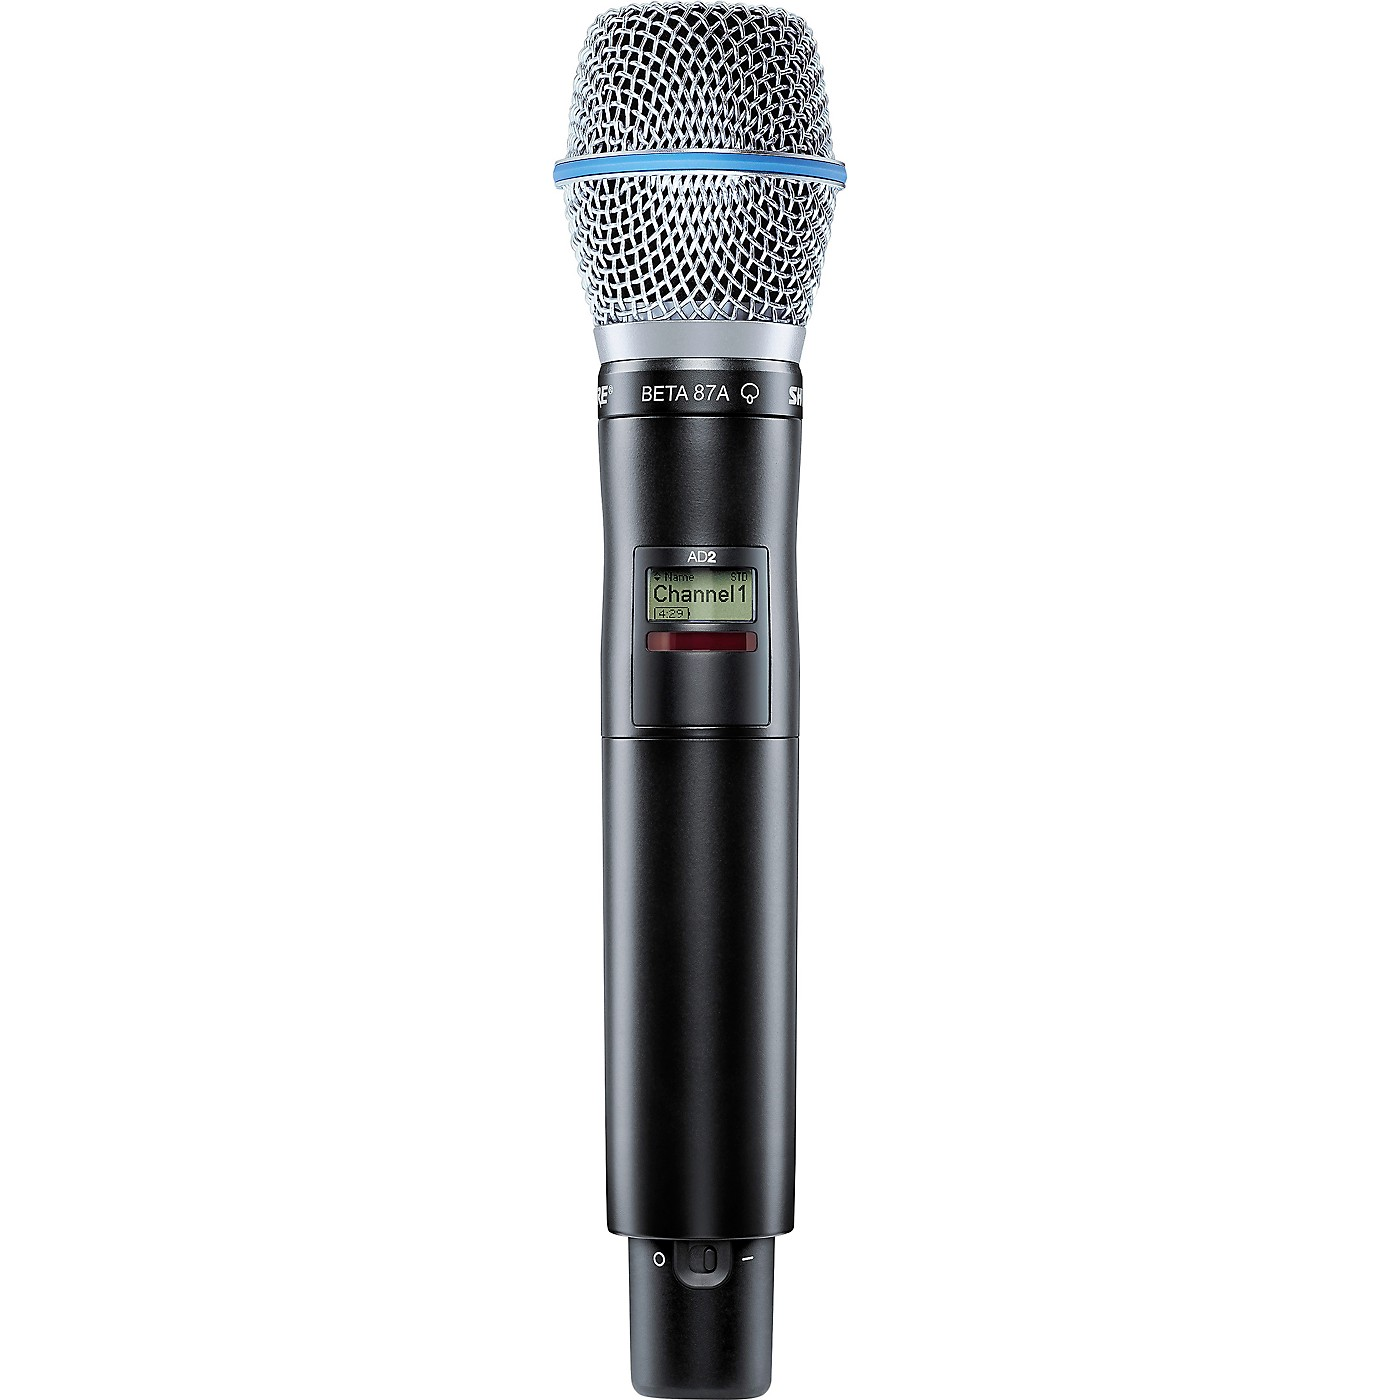 Shure Axient Digital AD2/B87A Handheld Wireless Microphone Transmitter thumbnail